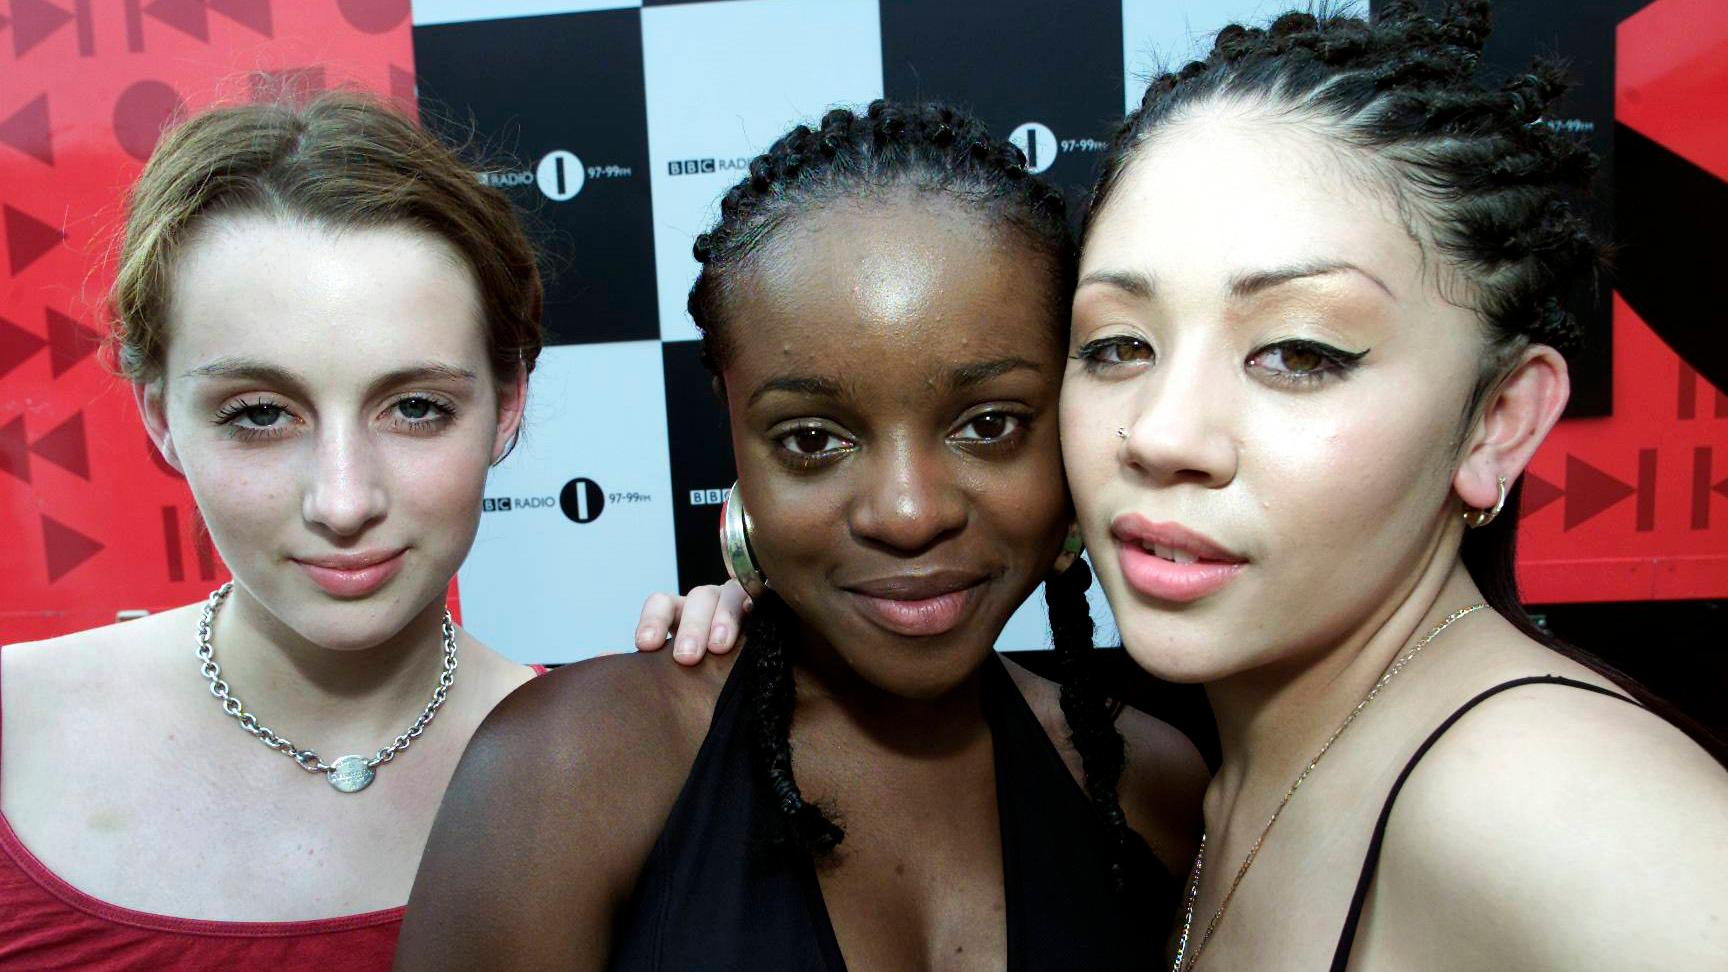 Sugababes: Keisha, Mutya and Siobhan, where are they now?